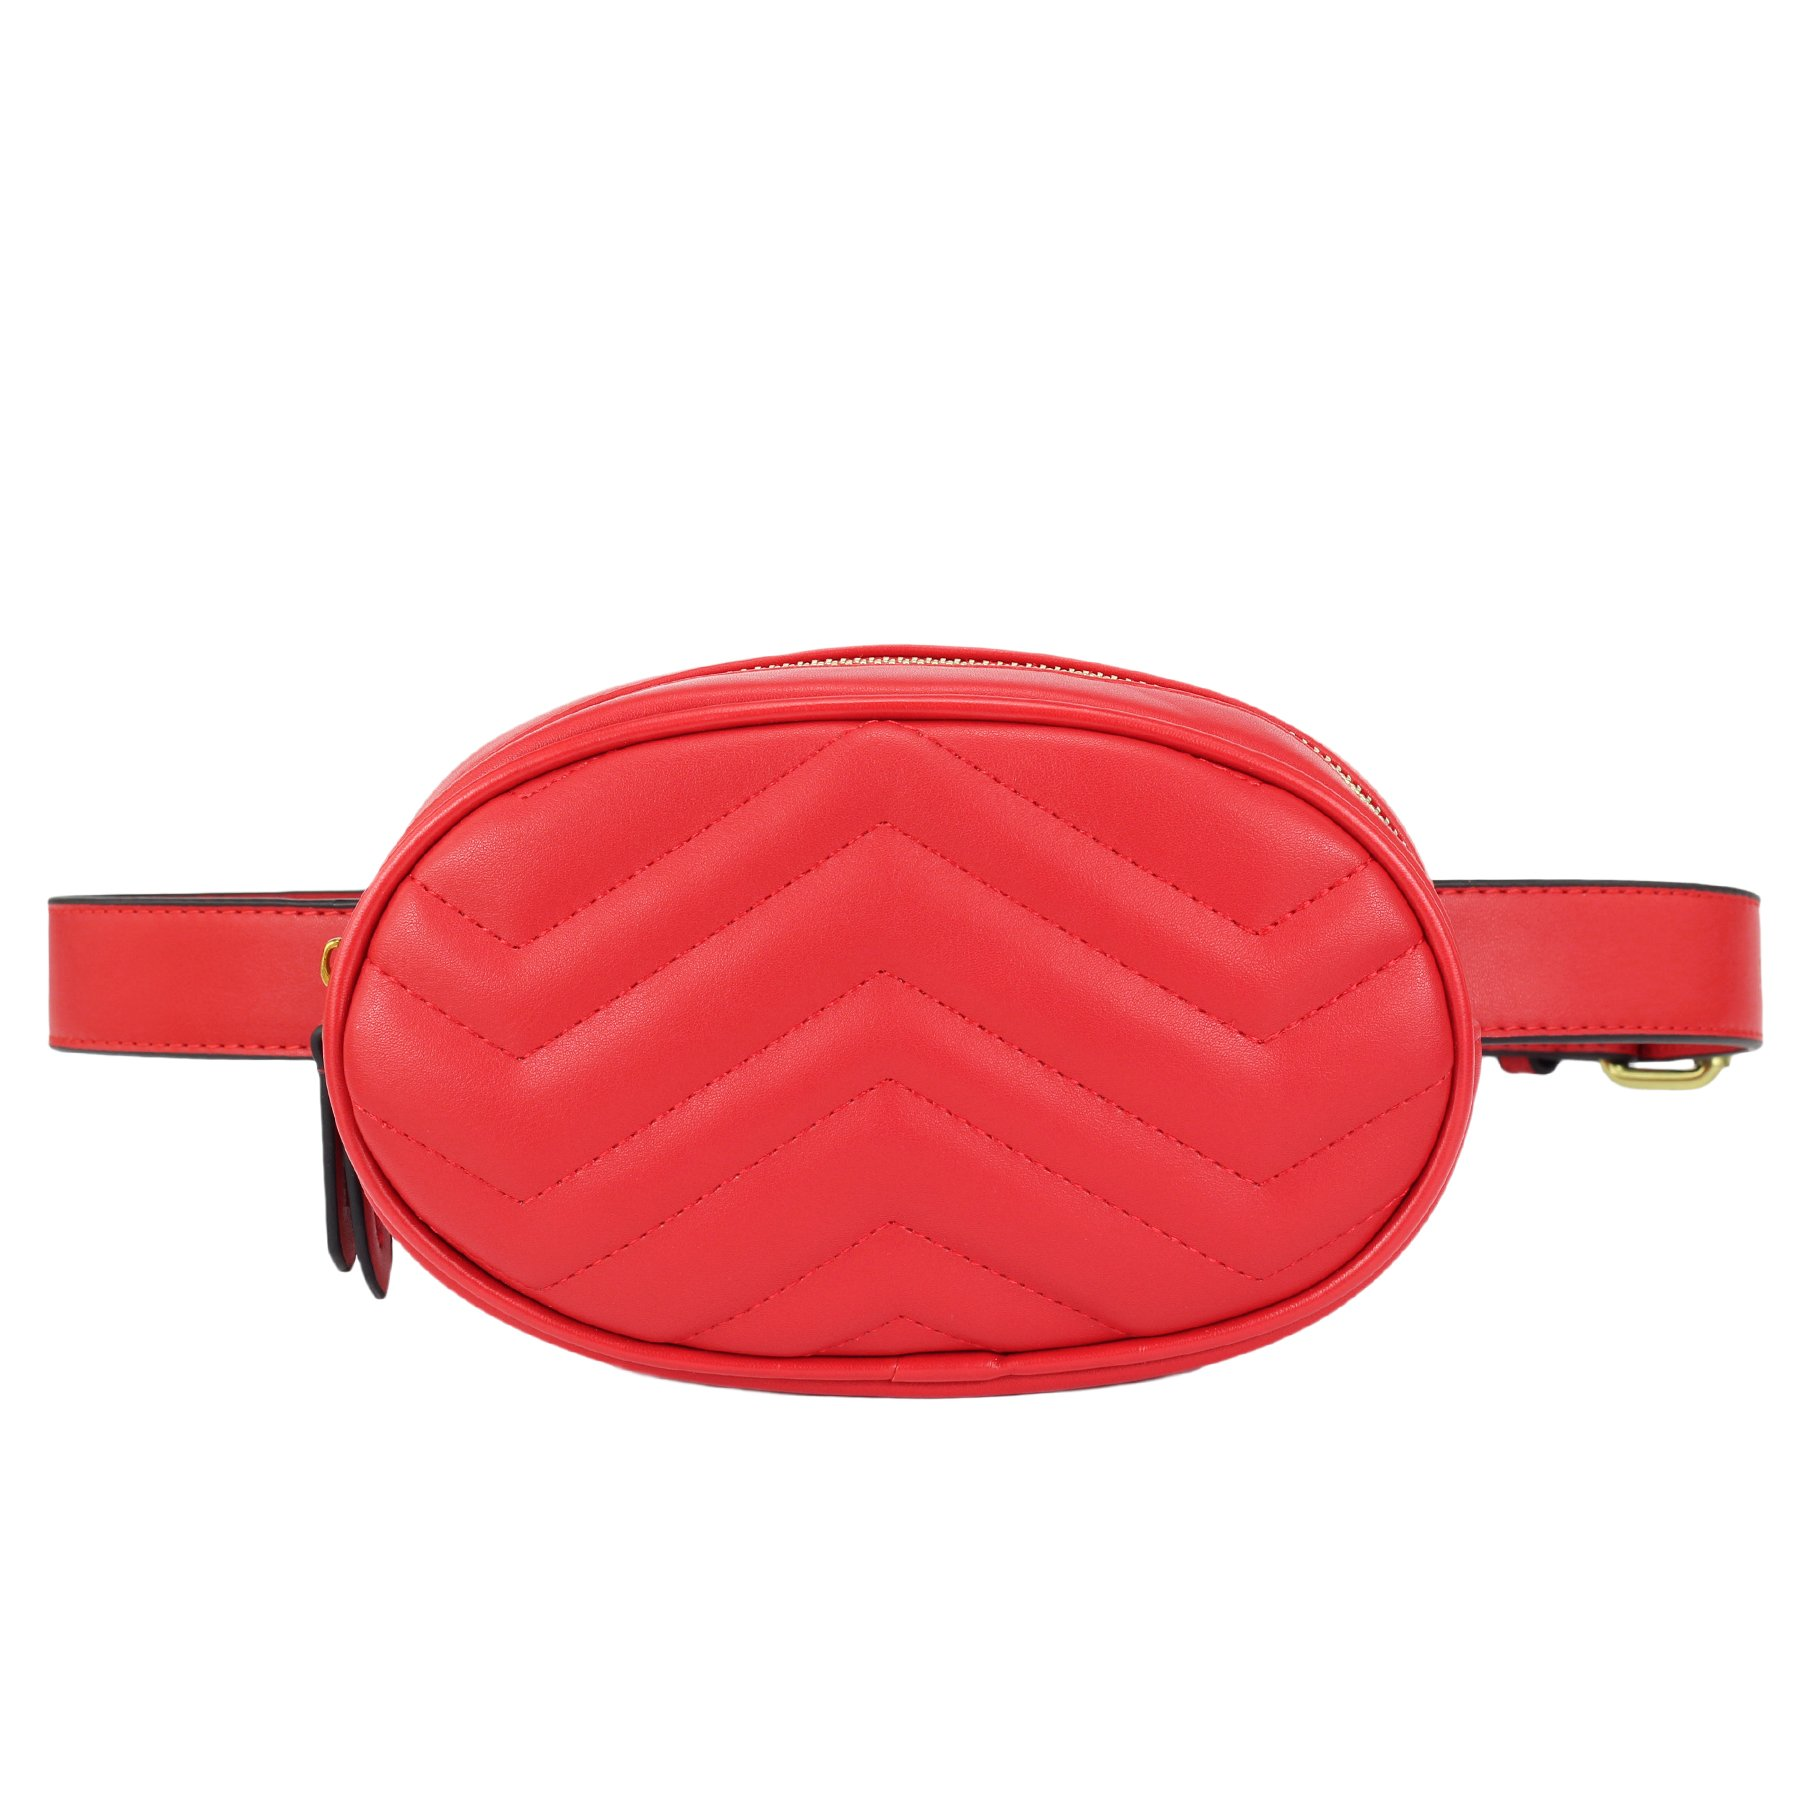 ZORFIN Women Fashion Quilted Leather Fanny Pack Classy Wasit Bag with Two Belts